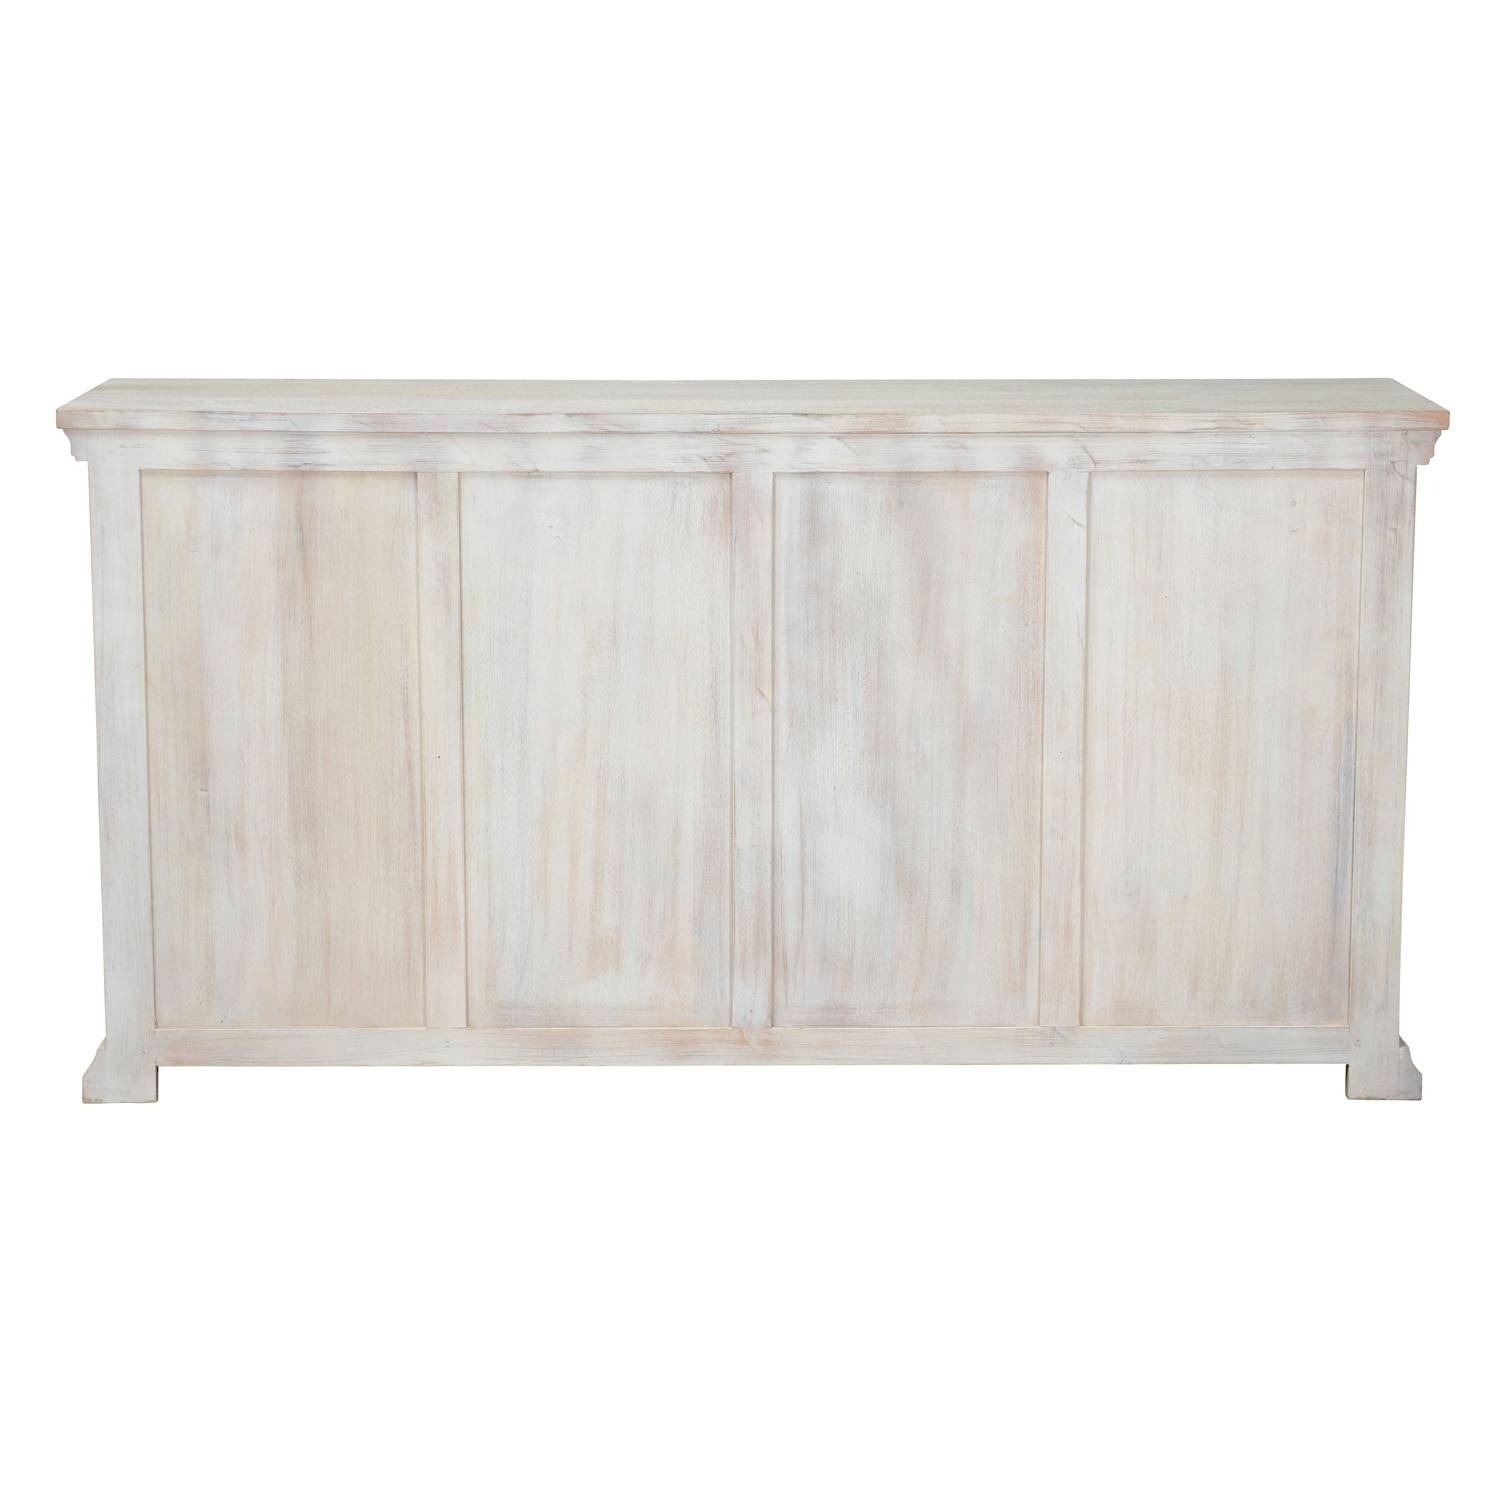 Manchester Wood Mirrored 70-Inch Sideboardkosas Home - Free inside 70 Inch Sideboards (Image 5 of 15)